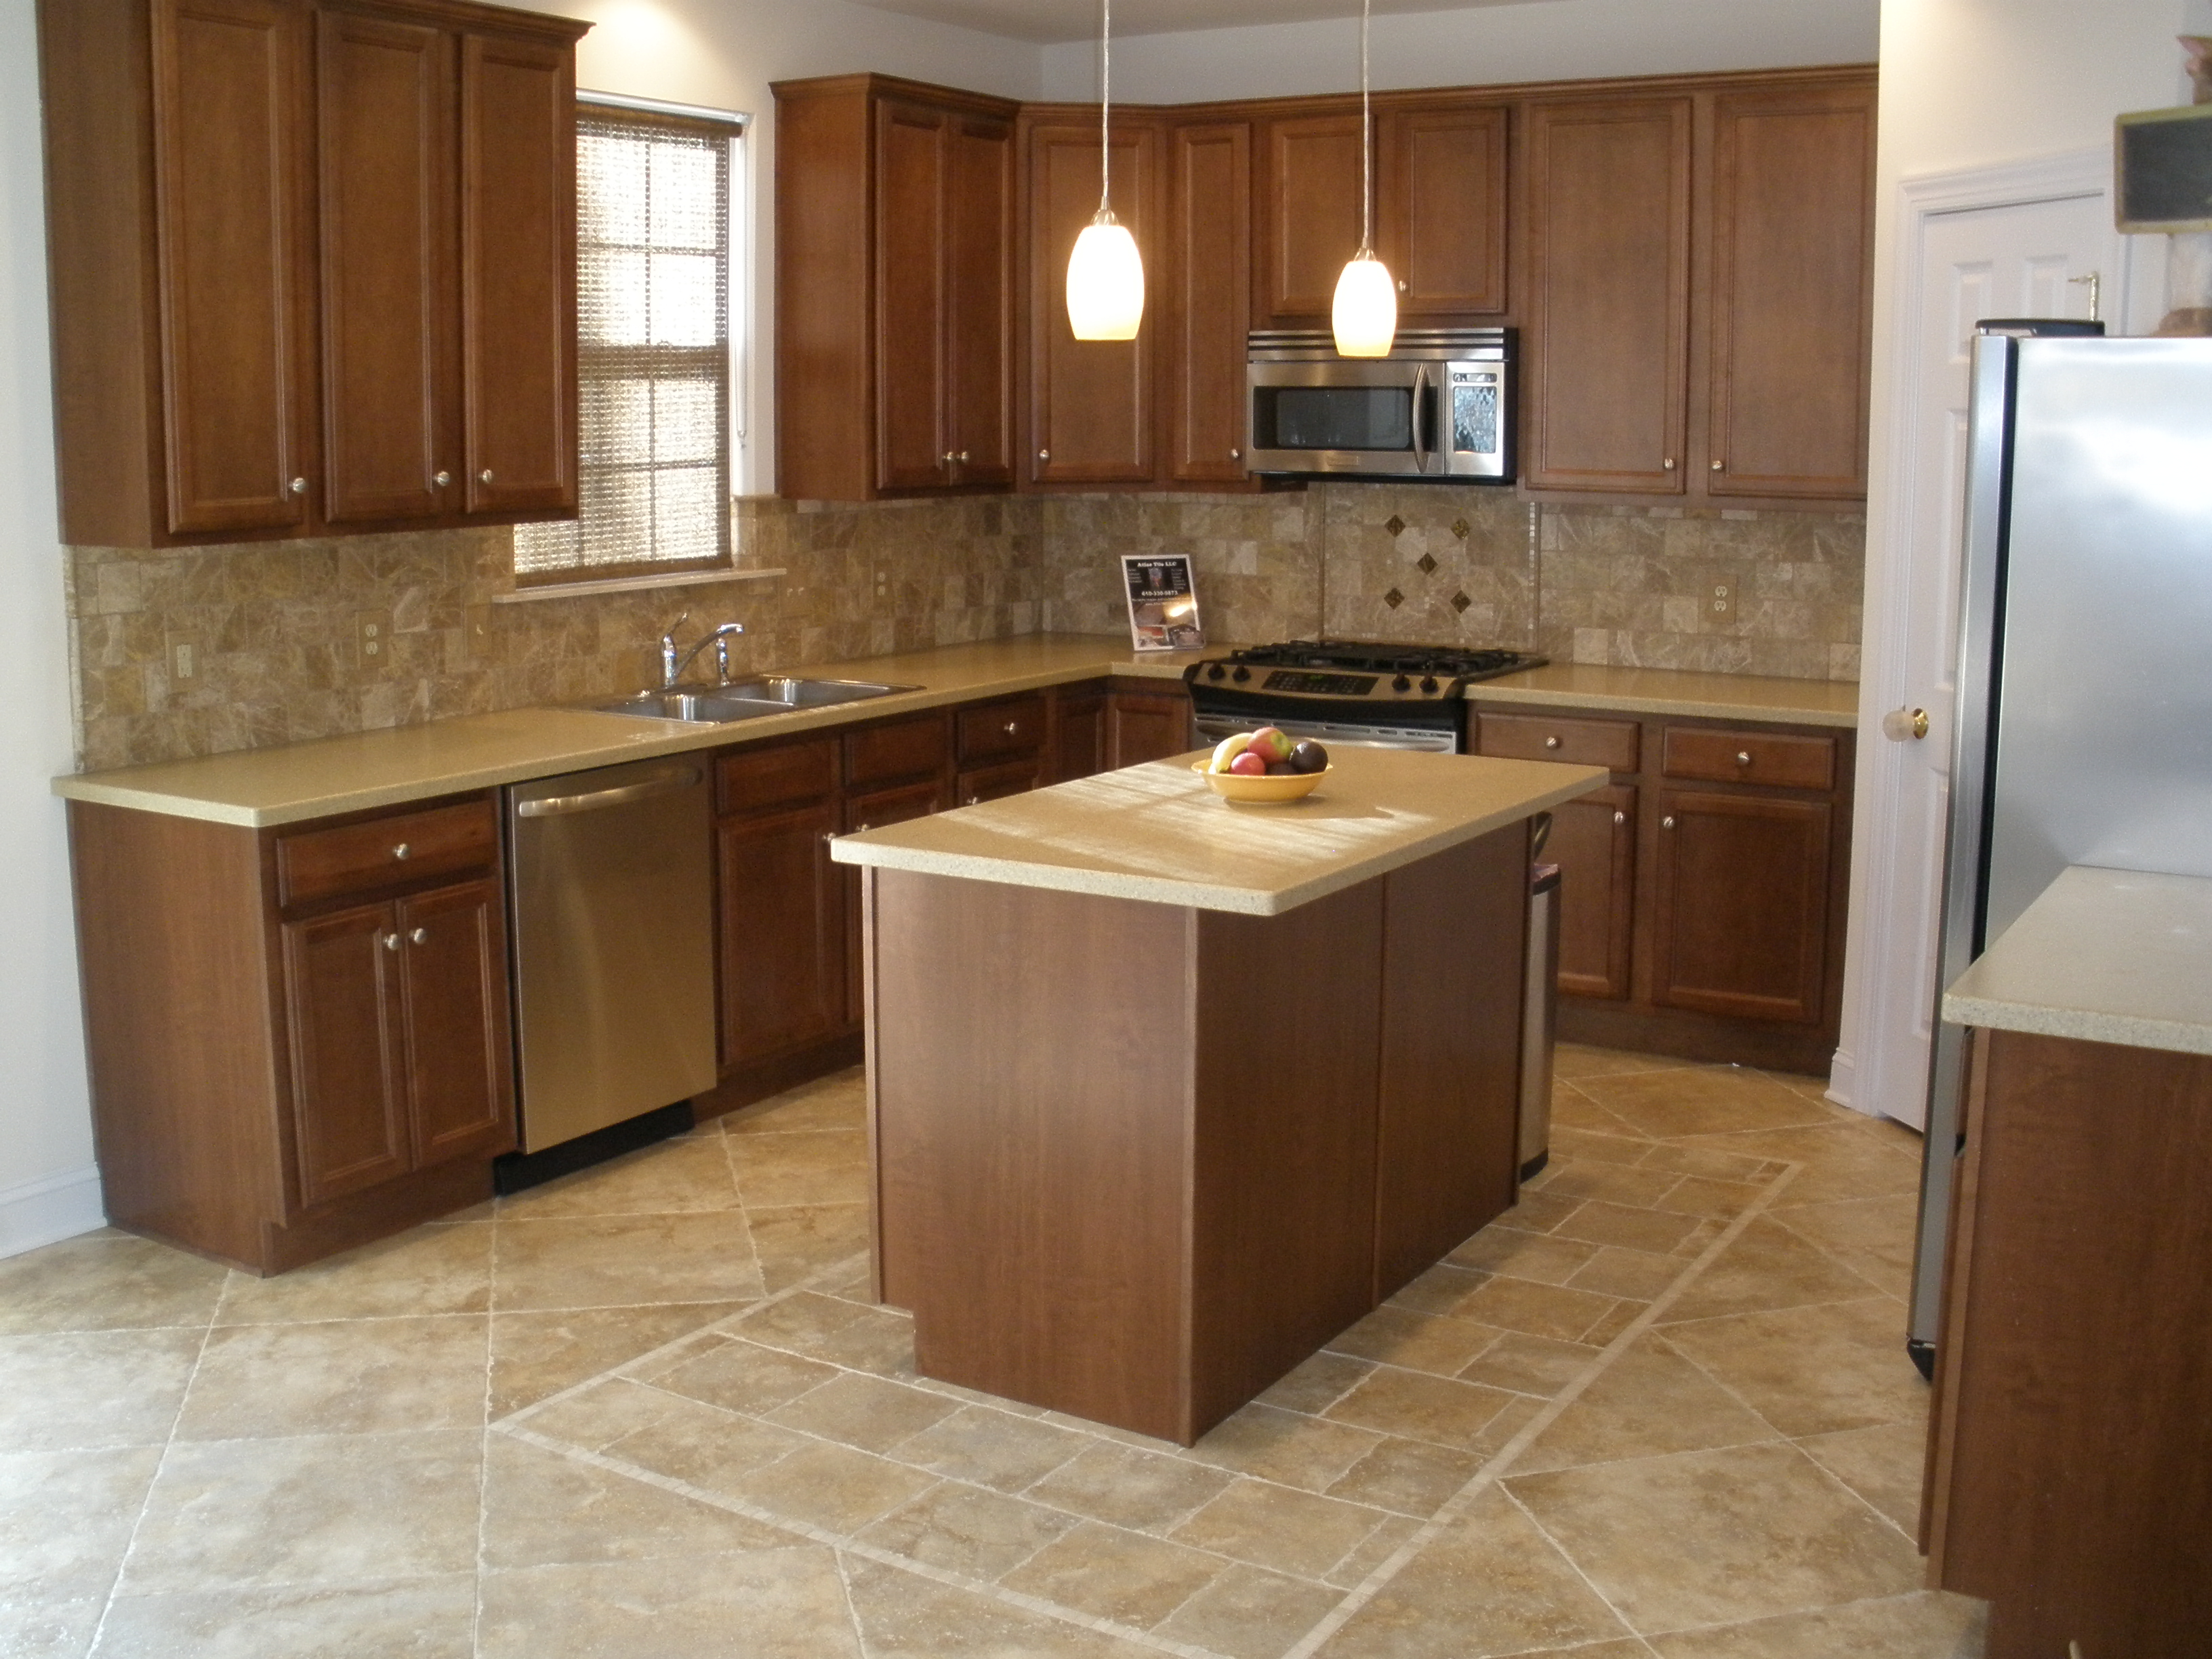 Beauteous Style of Lowes Kitchen Design with Wooden Cabinet using Chic Top and Backsplash